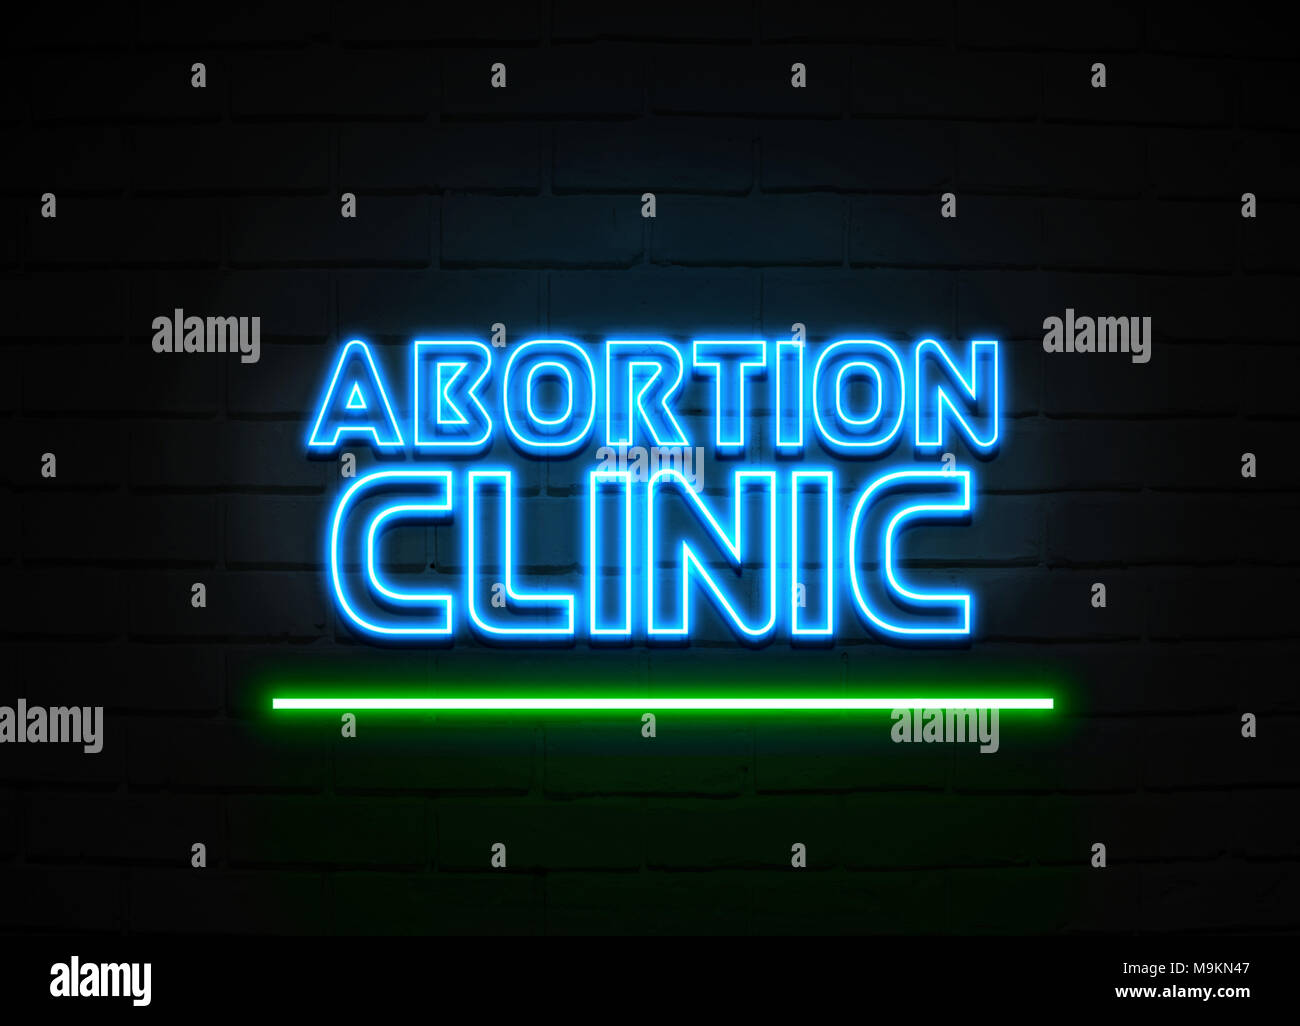 Abortion Clinic neon sign - Glowing Neon Sign on brickwall wall - 3D